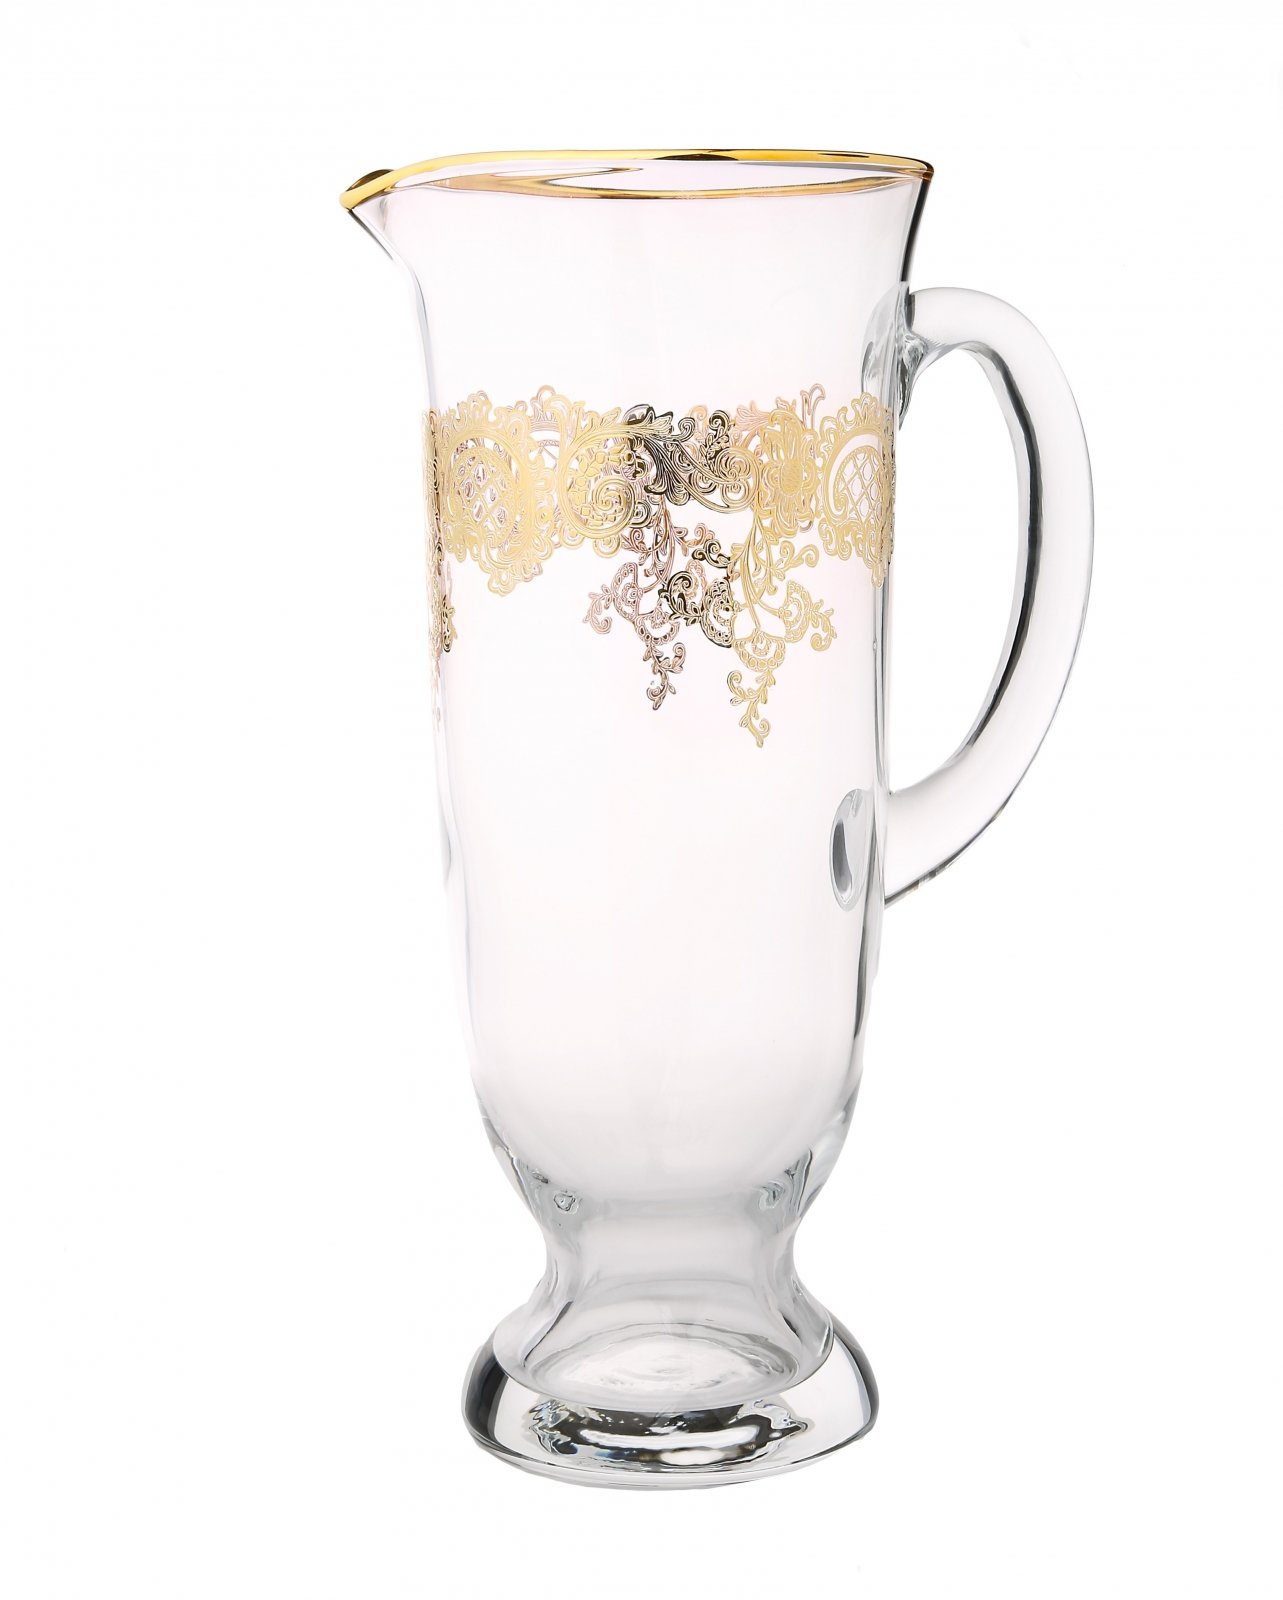 Water Pitcher with 24k Rich Gold Design